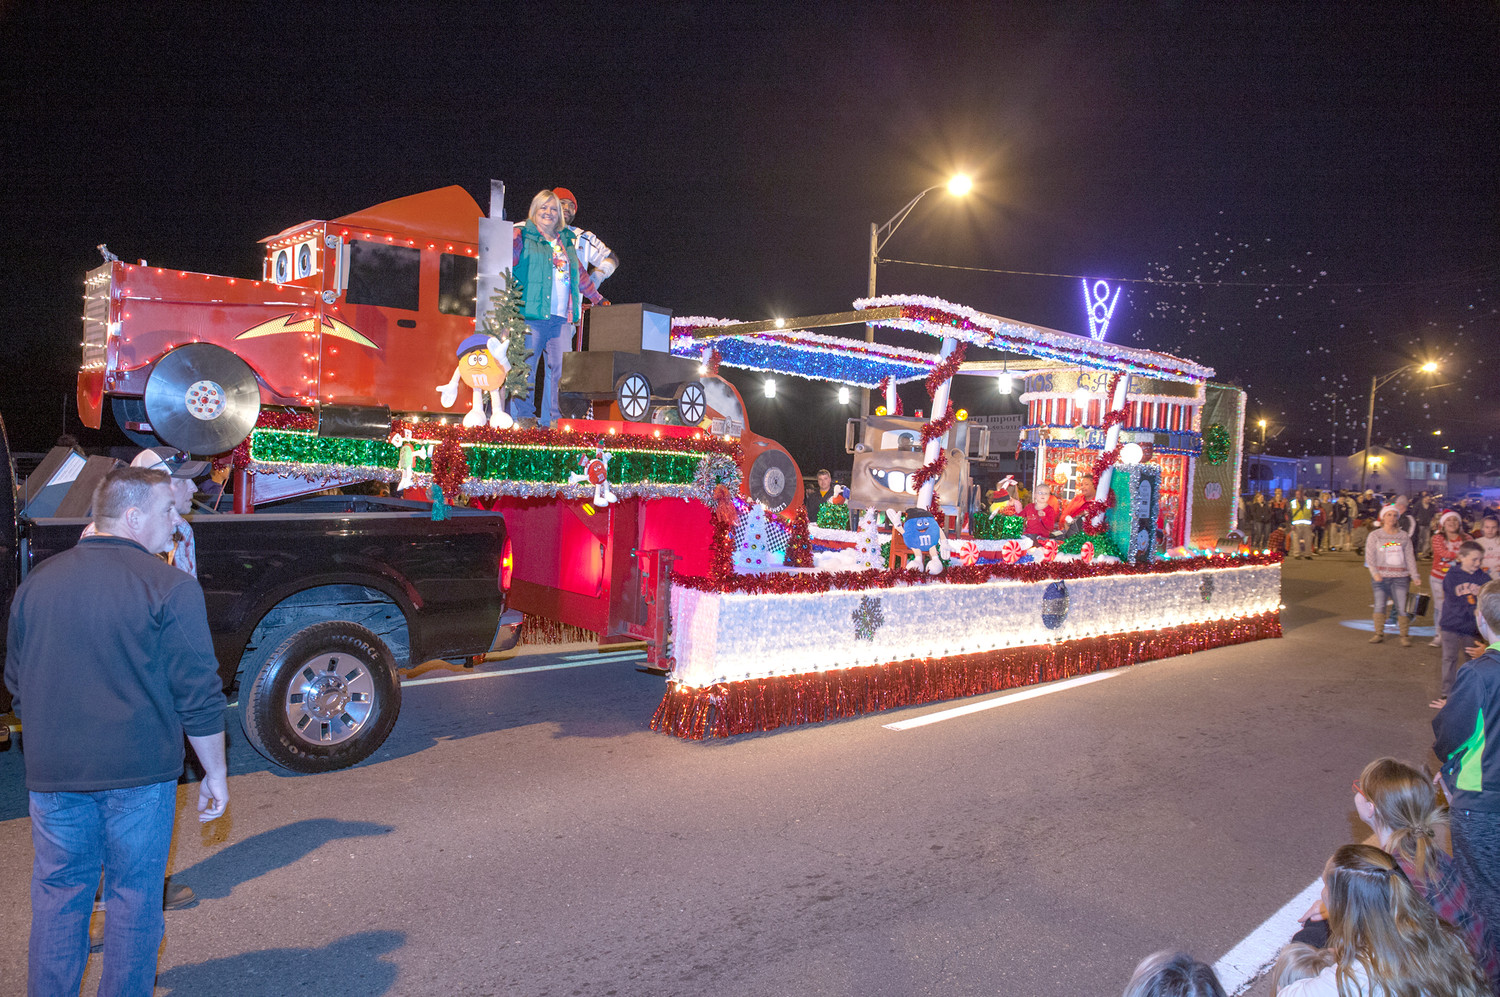 M&M MARS WON the Best Overall float award in the Mainstreet Cleveland Christmas Parade on Saturday night December 2.